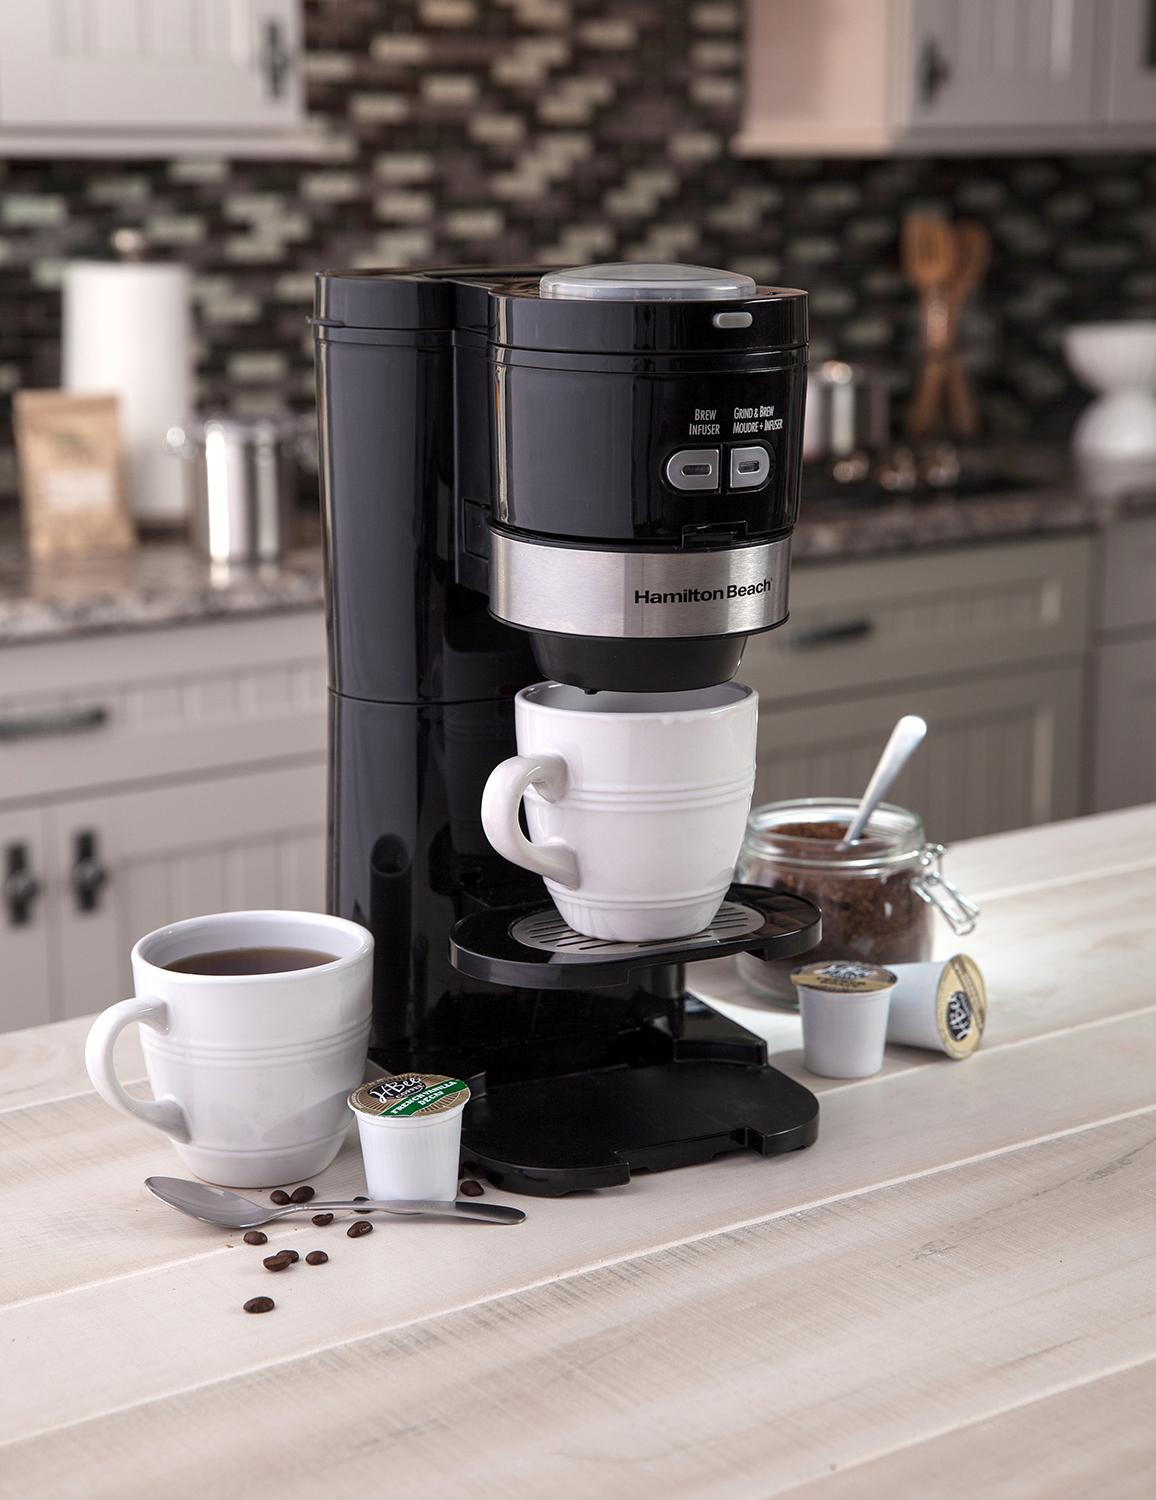 Hamilton Beach 2 Way Grind and Brew Single Serve 16 Ounce Coffee Maker 49989 eBay